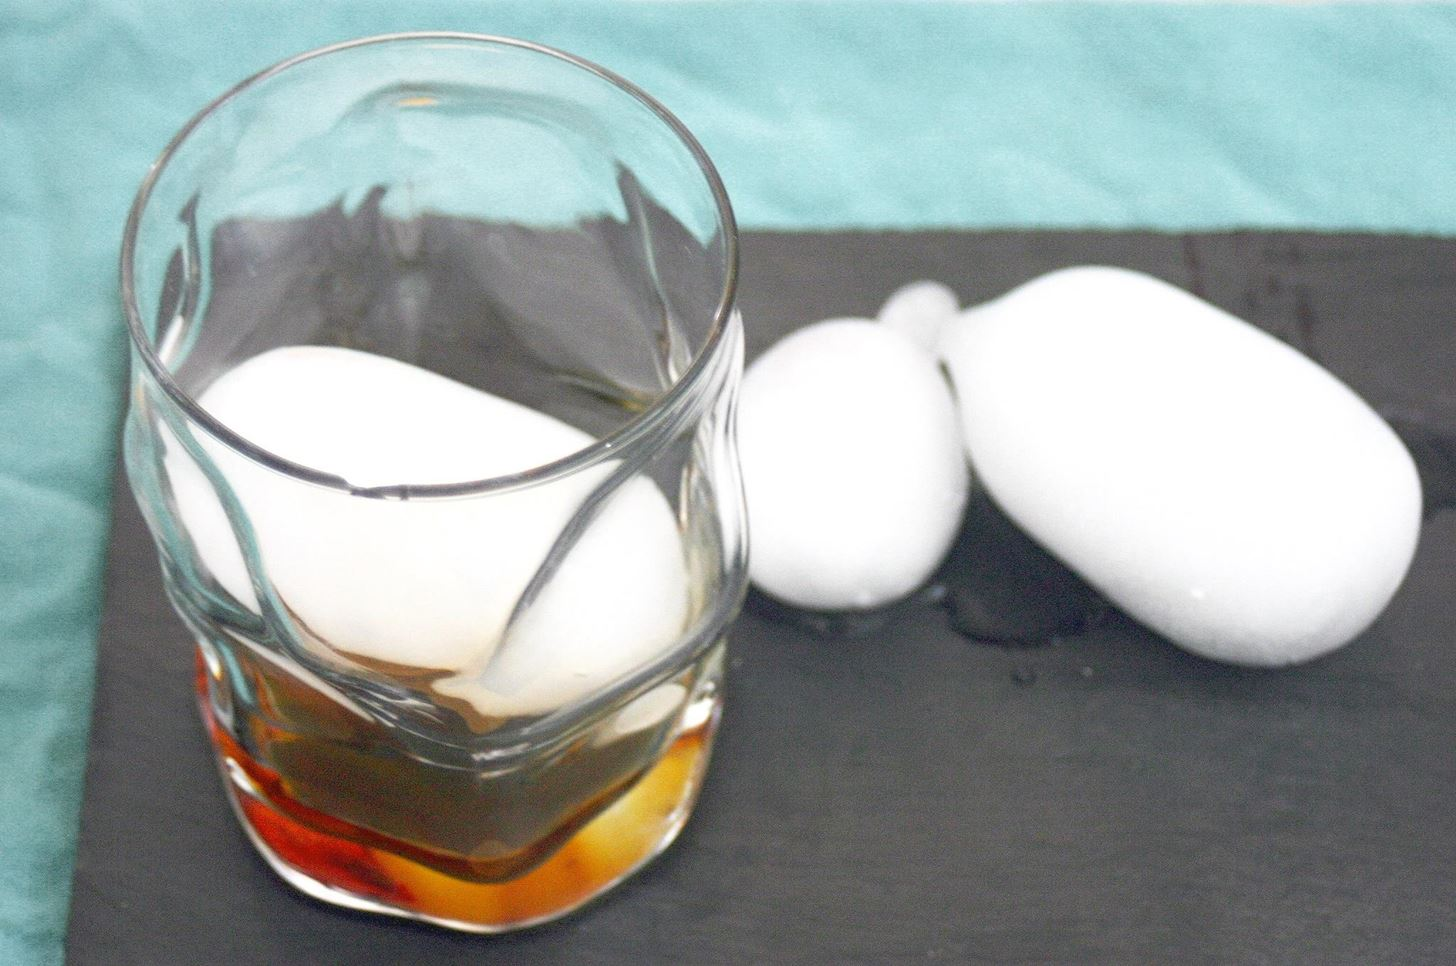 How to Make Whiskey Ball Ice Without a Mold